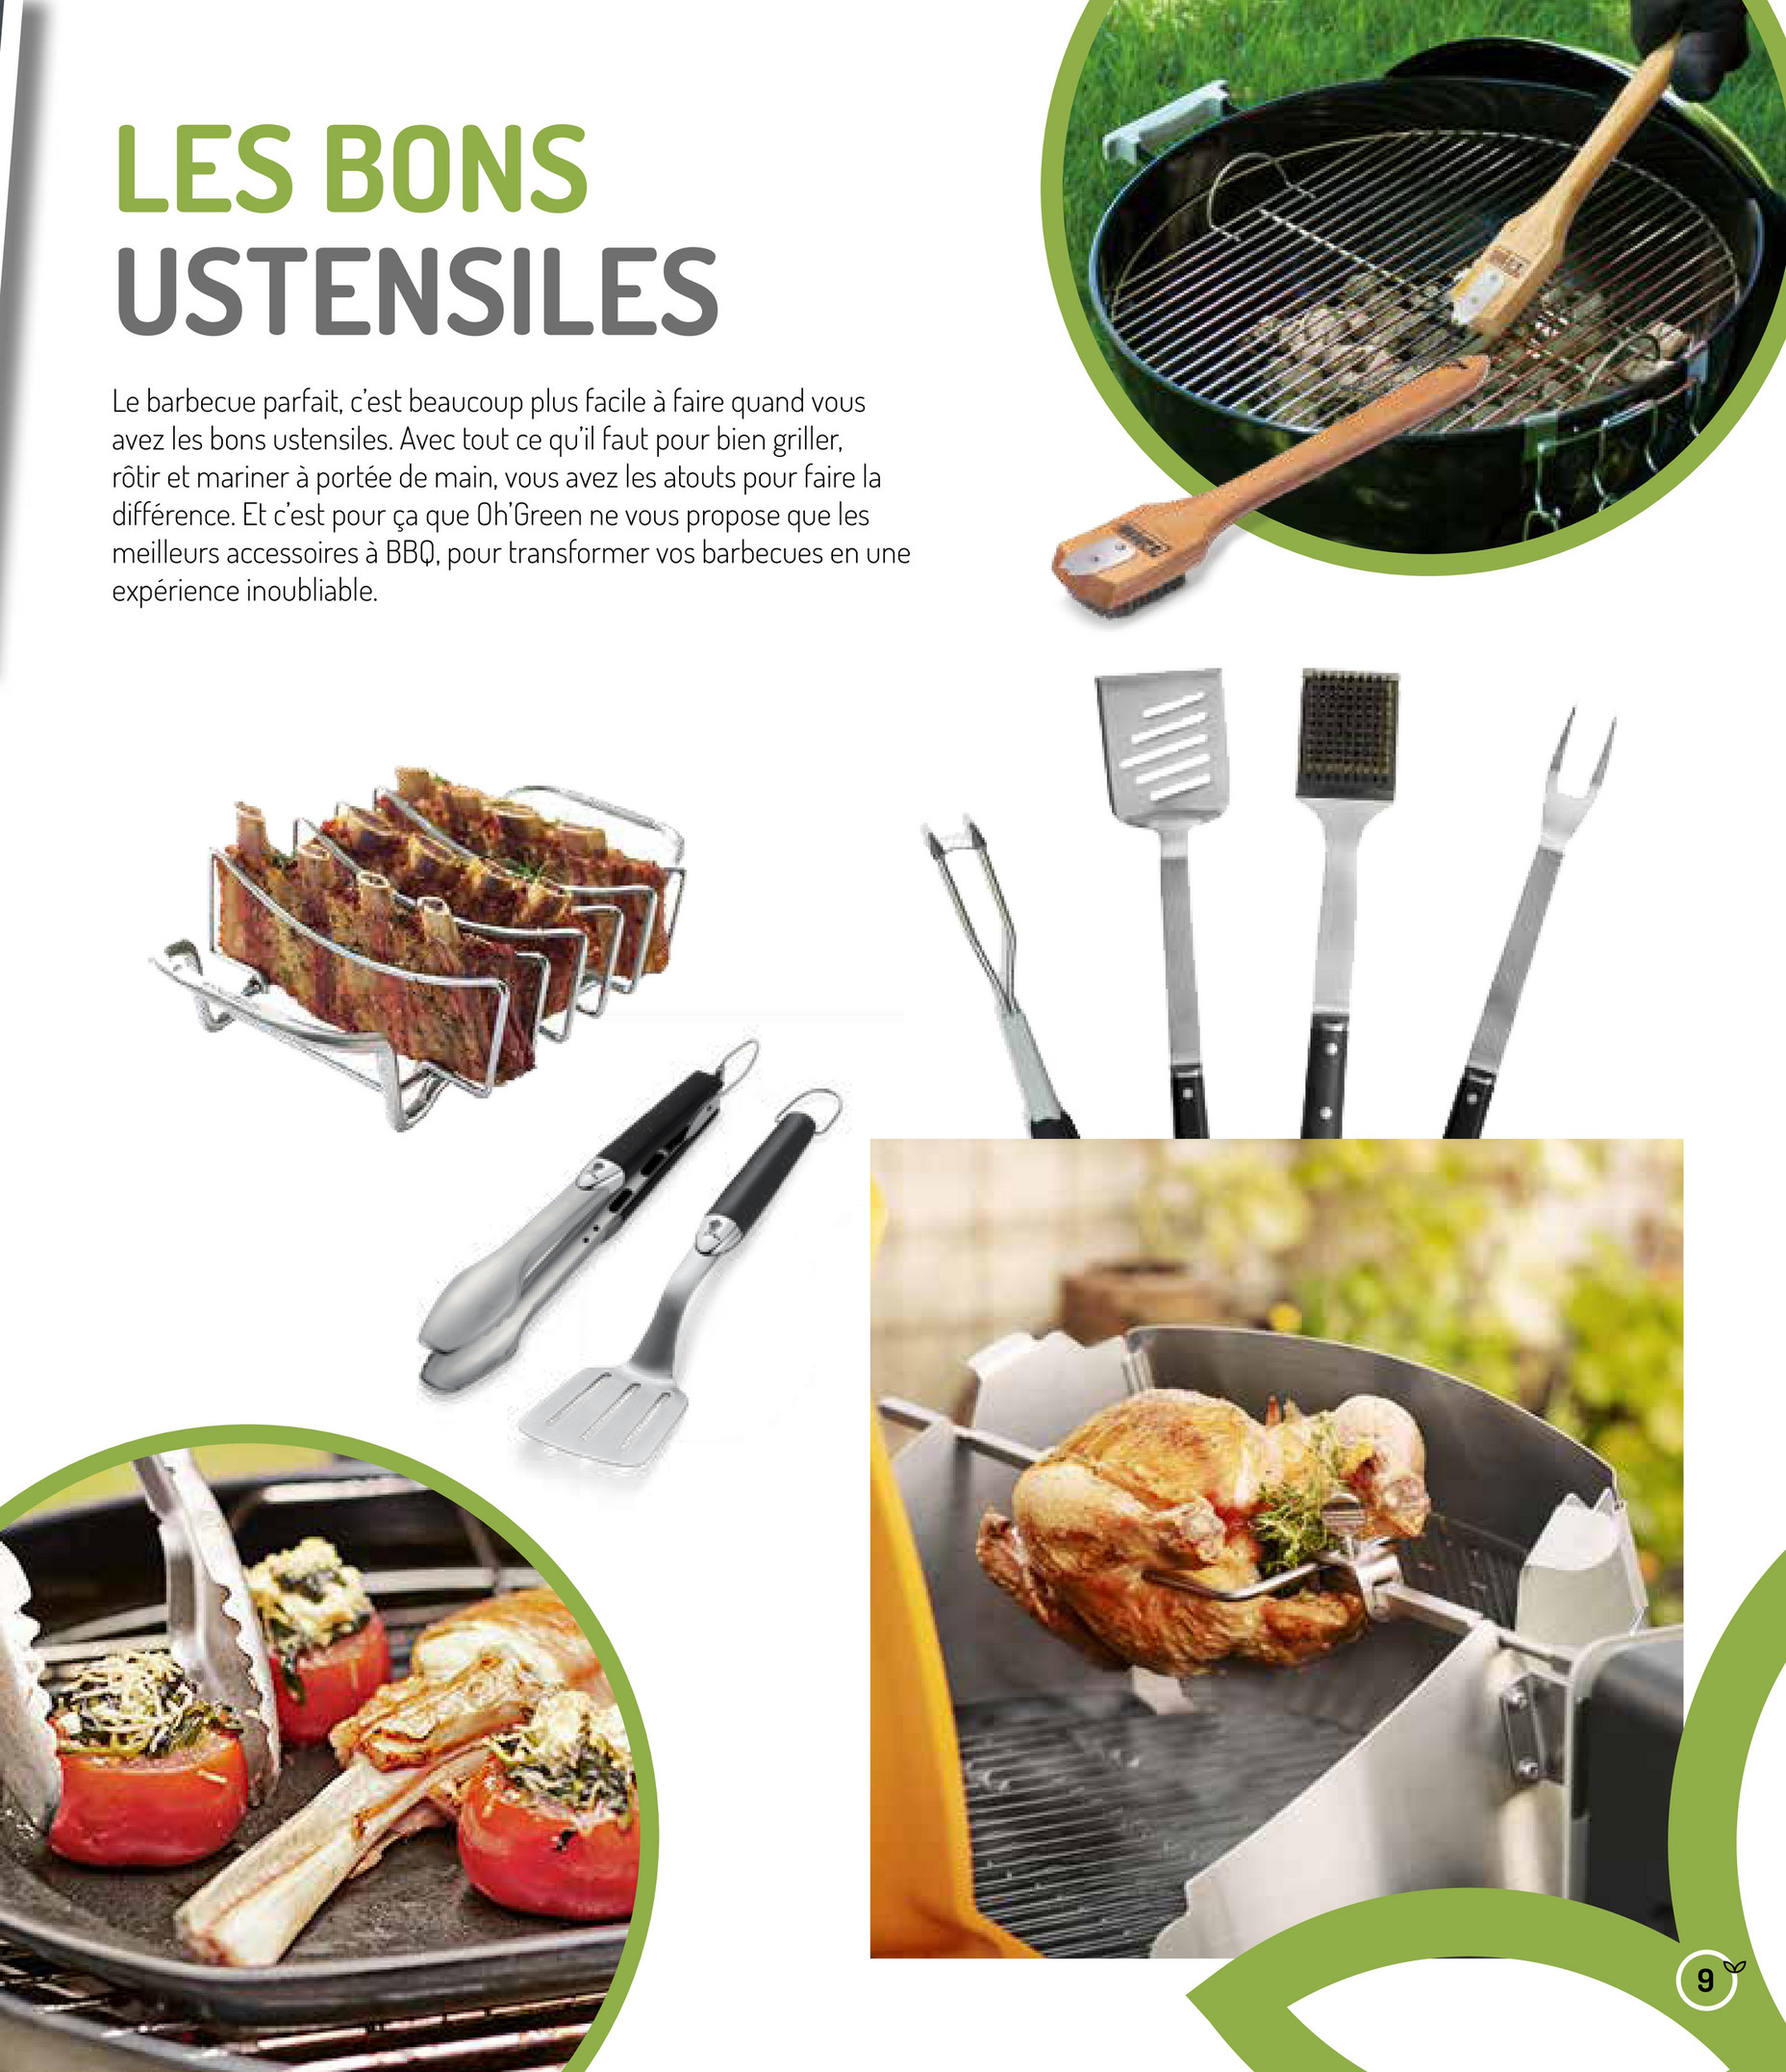 Oh'Green FR_ZOMER BBQGIDS_2020 Pagina 8 9 Created with